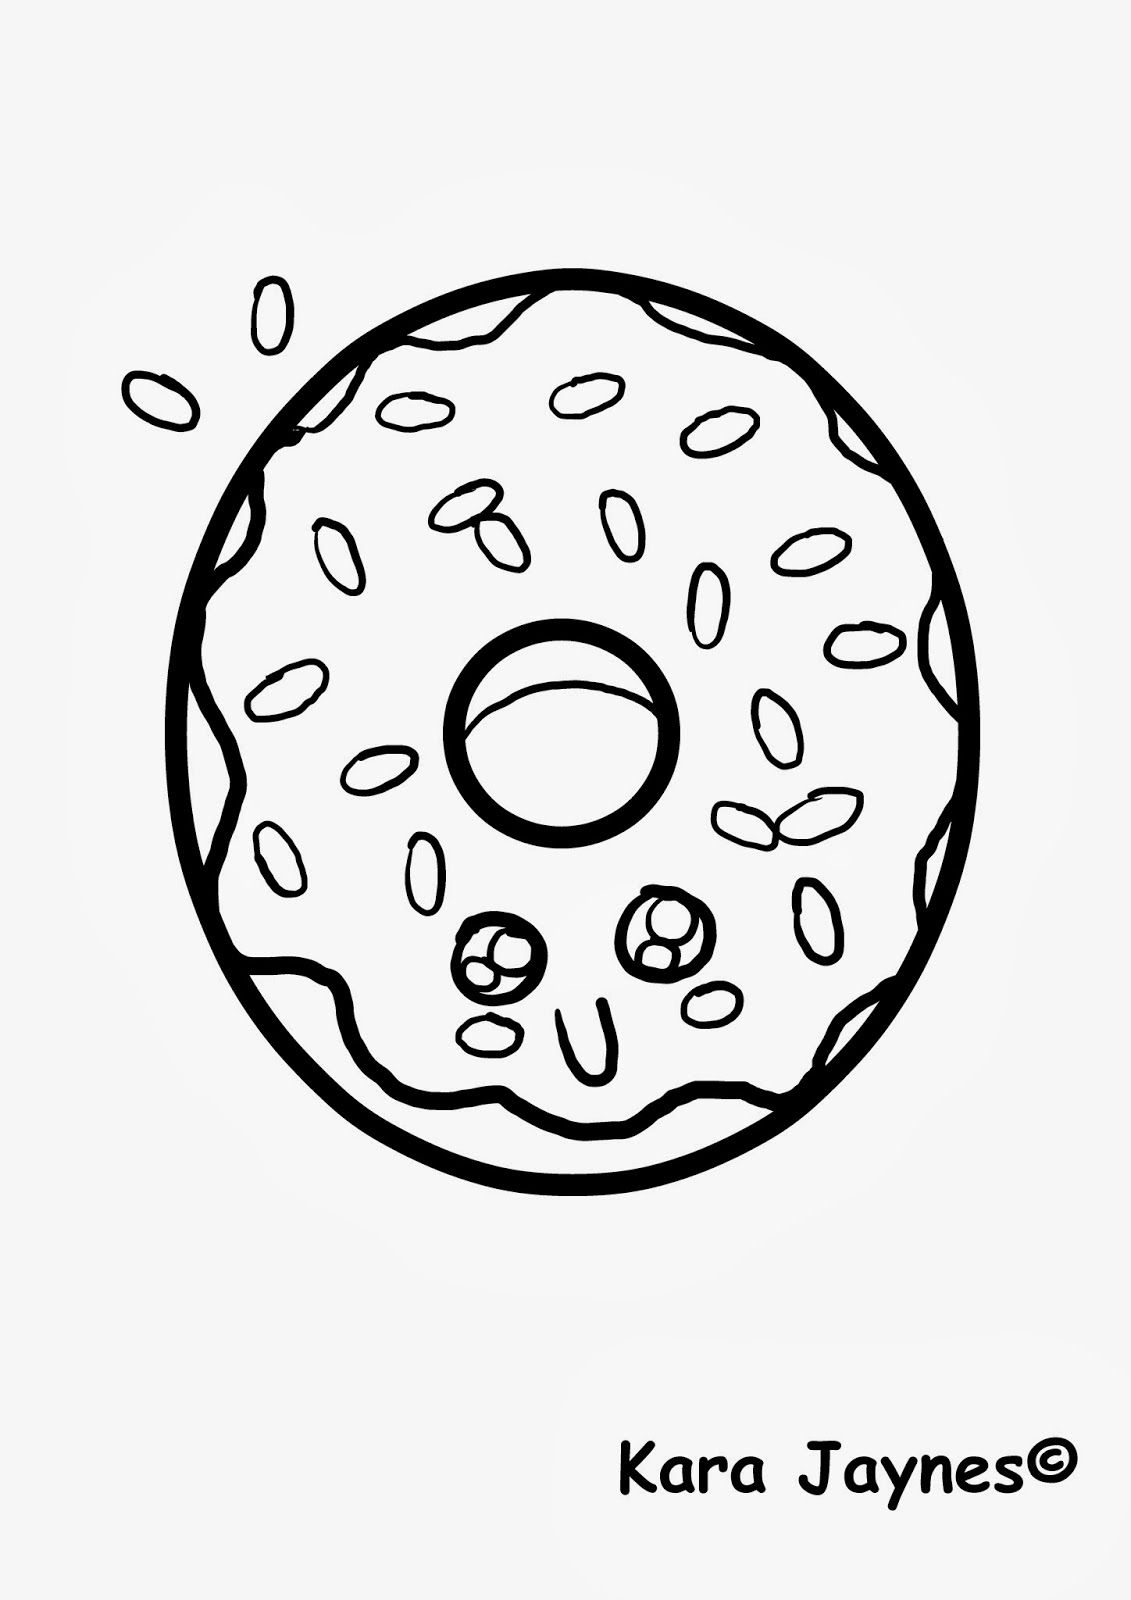 pictures of food coloring food nutrition coloring pages coloring pages coloring home coloring pictures food of